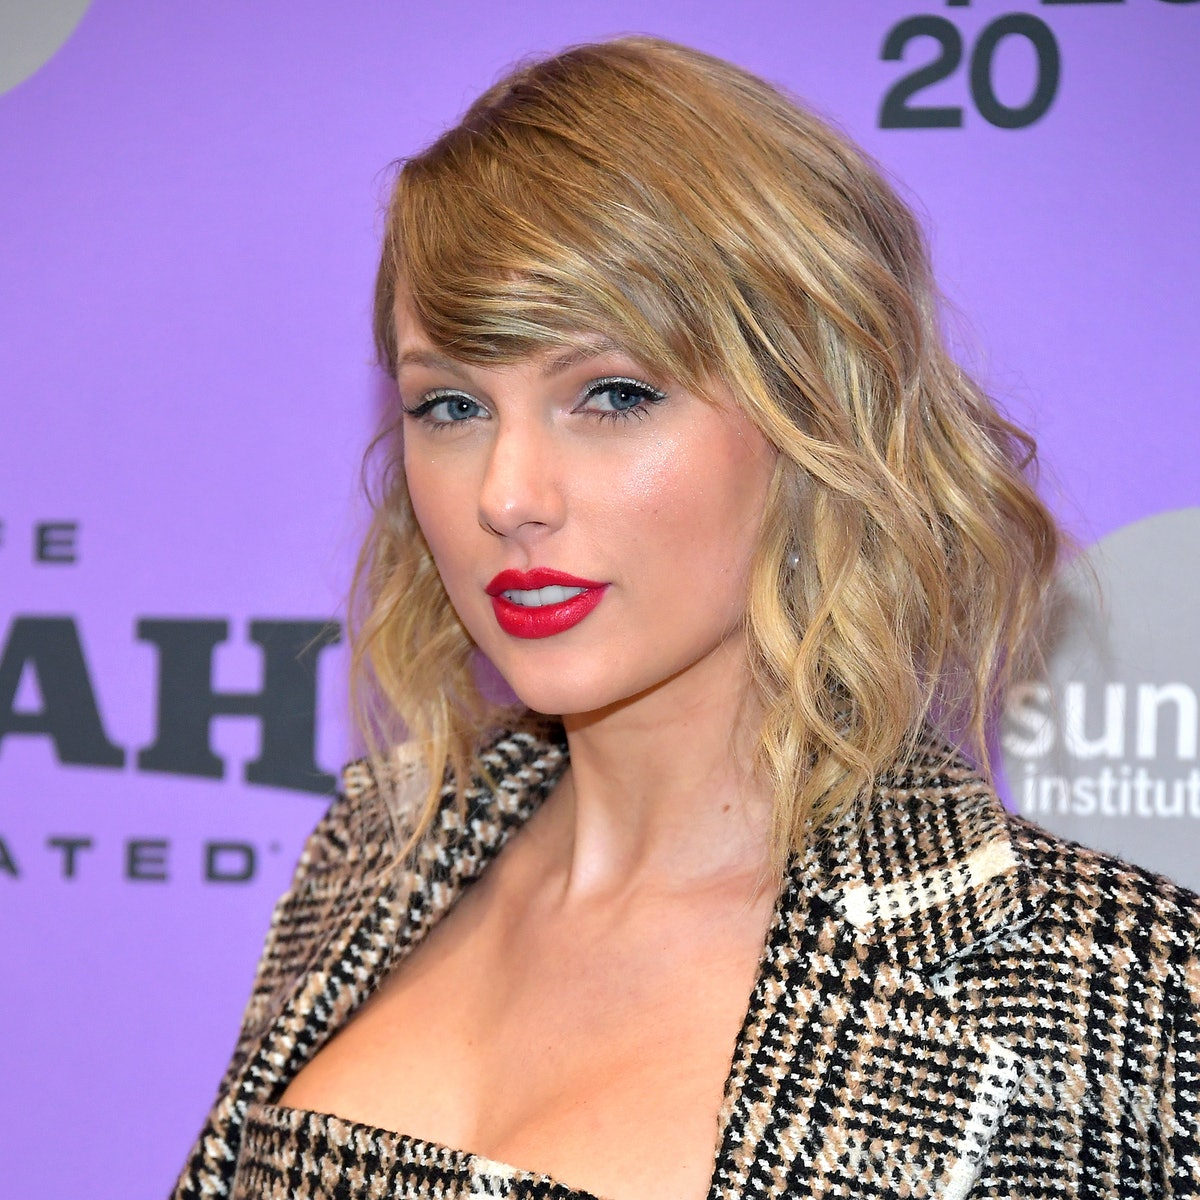 Tweets About Taylor Swift's 'Miss Americana' Documentary